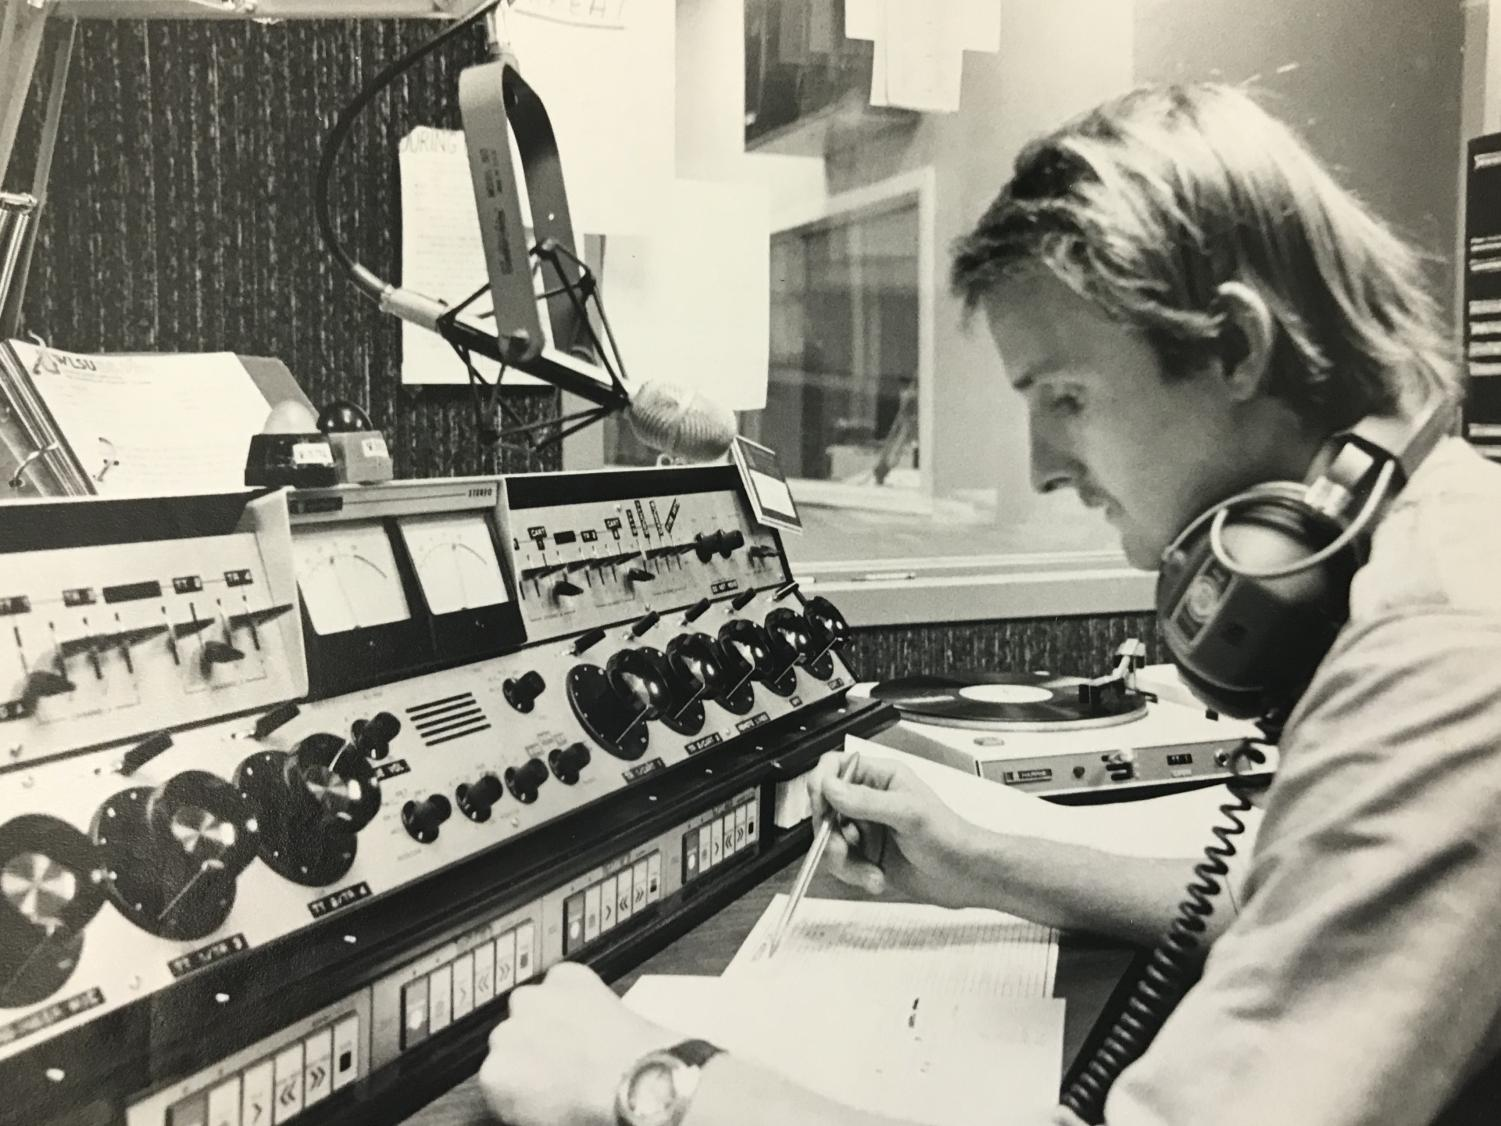 UWL student broadcasting on WLSU in 1980. Retrieved from UWL archives.